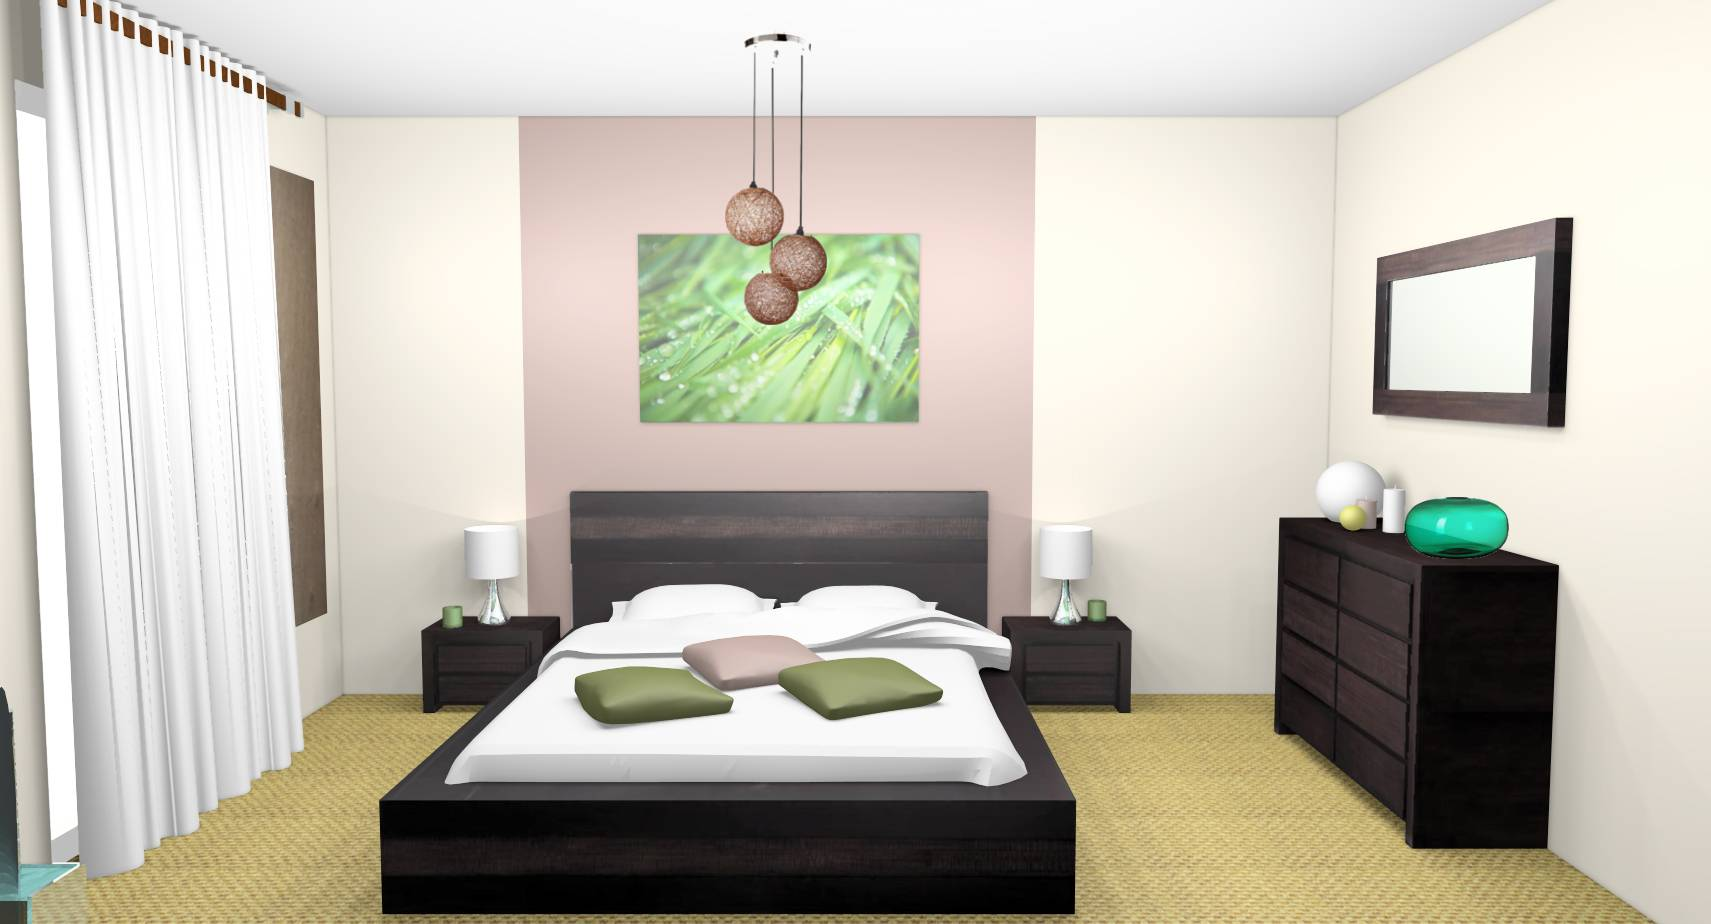 D co chambre zen adulte for Decoration pour chambre